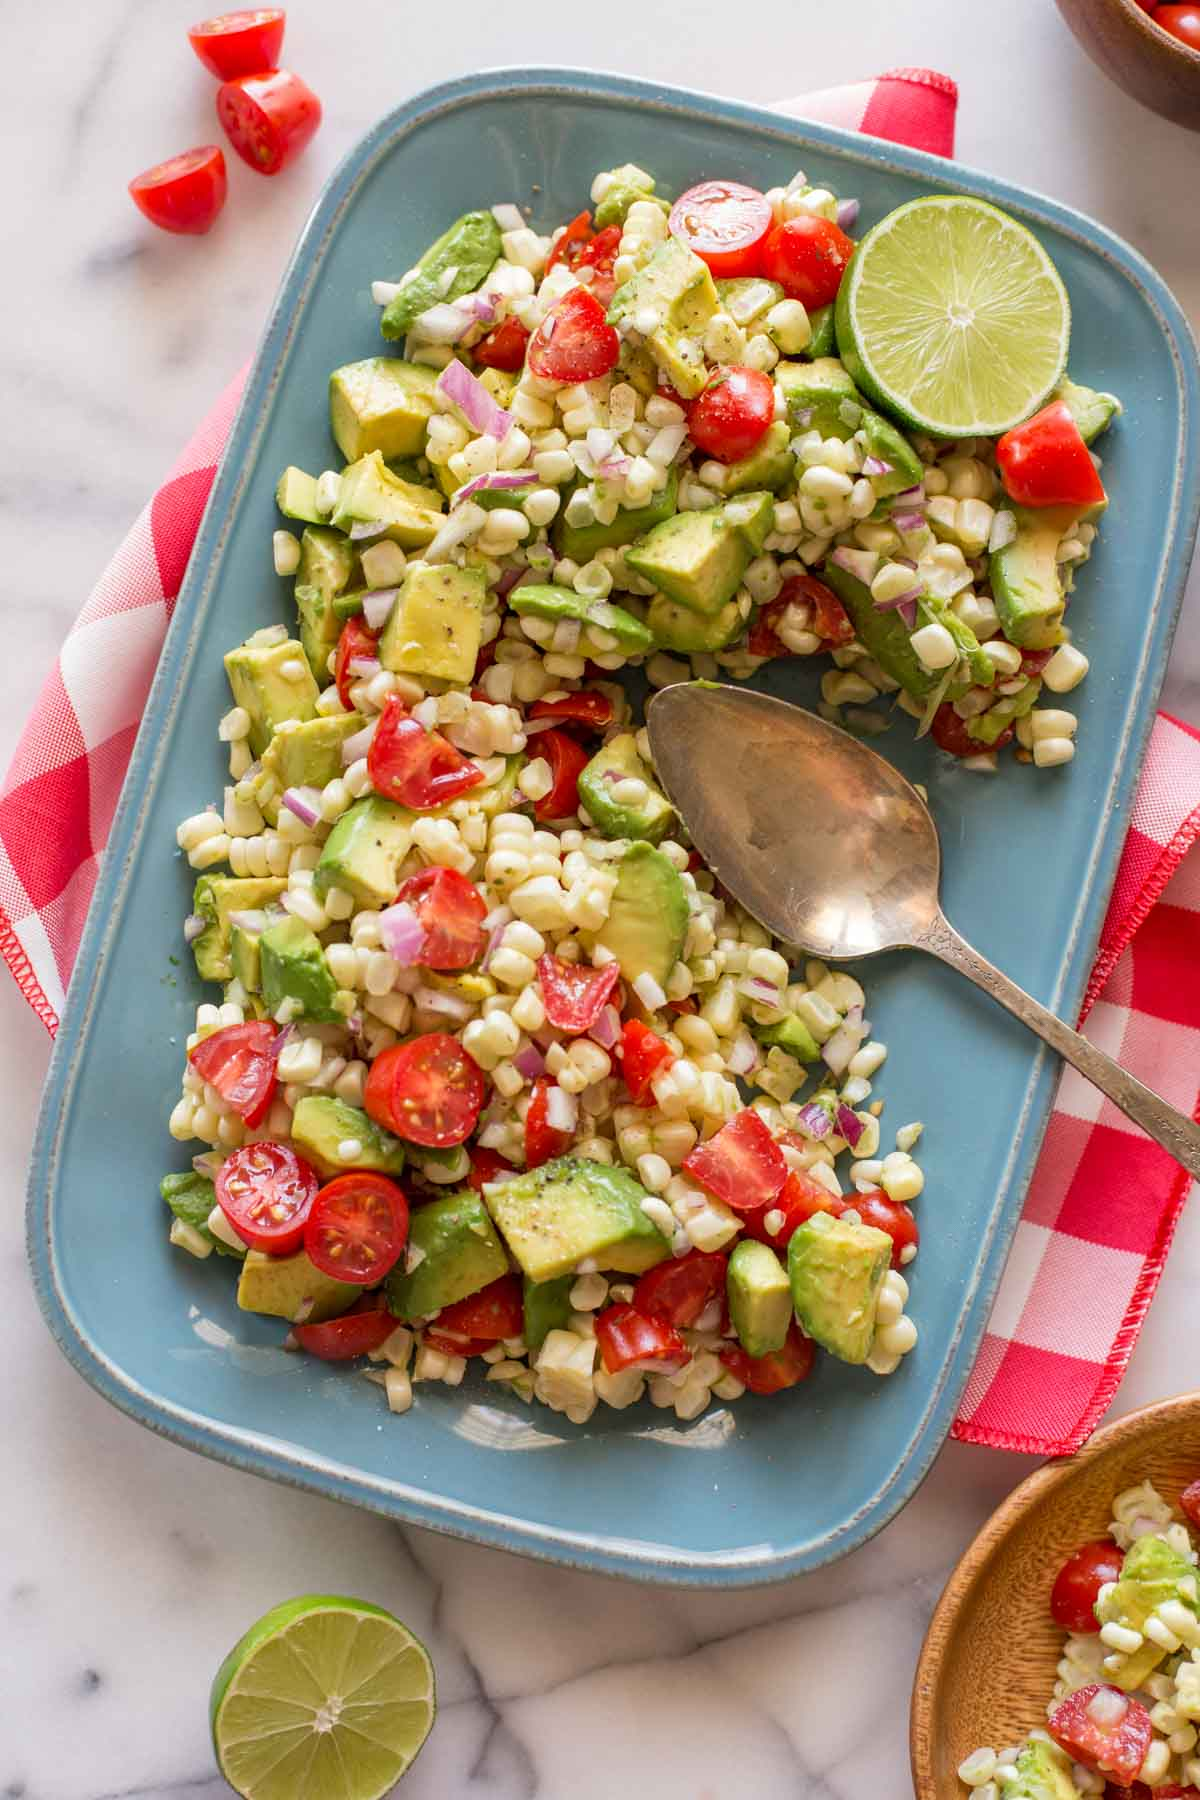 Corn, Tomato, and Avocado Salad on a platter with a serving spoon.